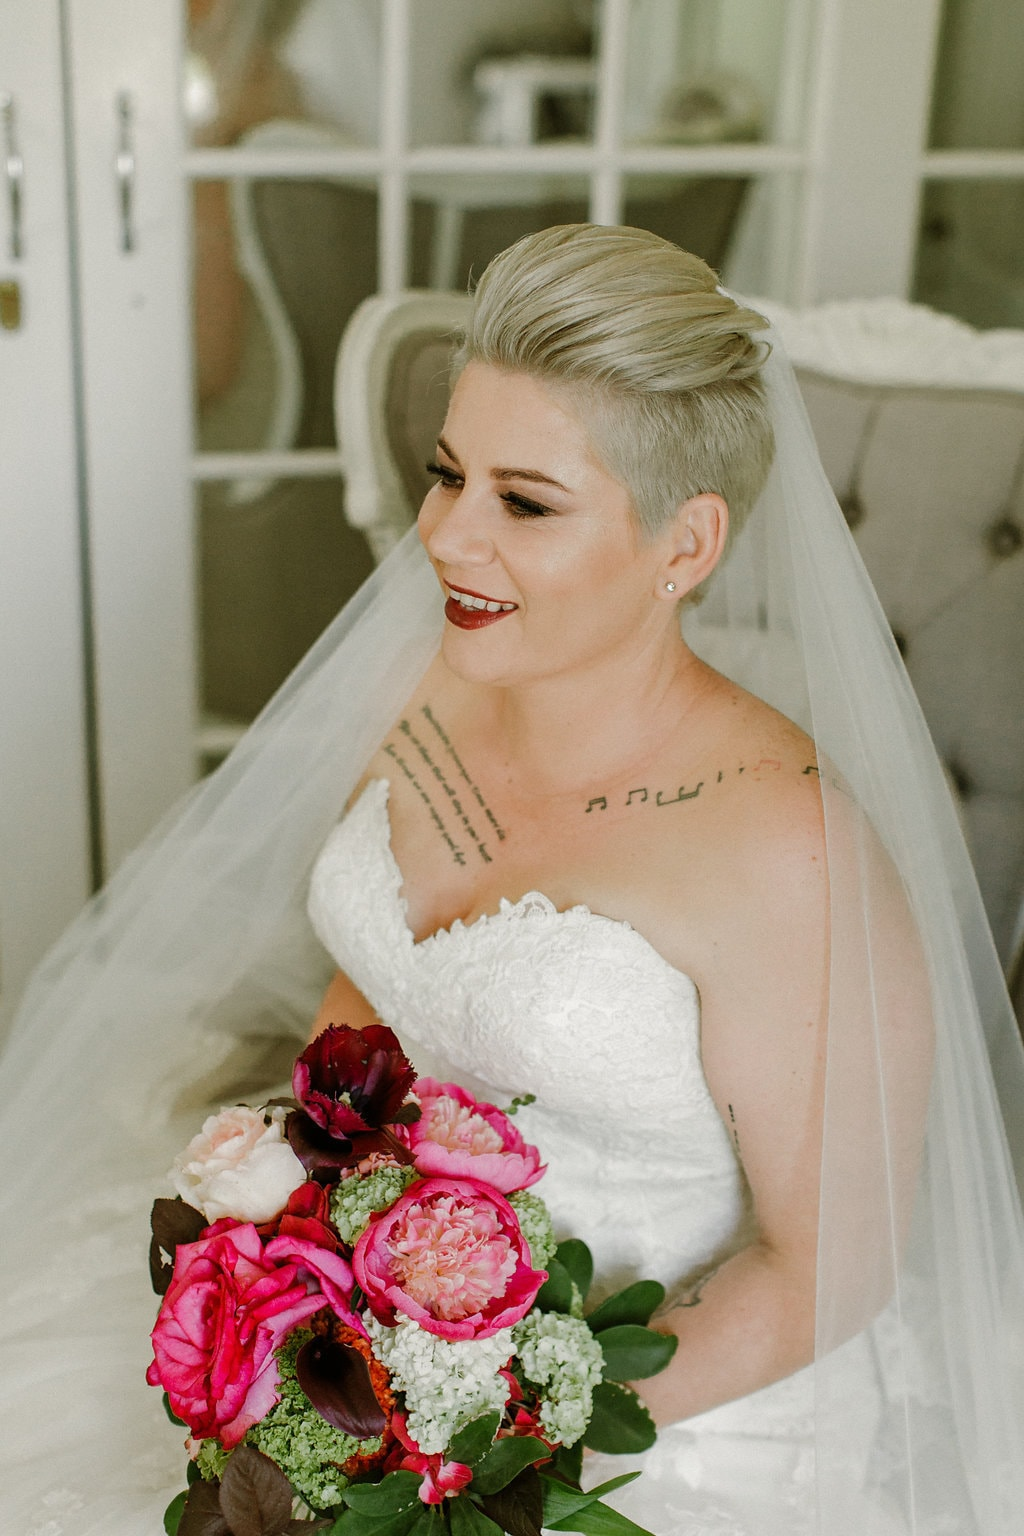 Bride in Sweetheart Neck Gown with Veil & Bold Bouquet | Image: Jenni Elizabeth